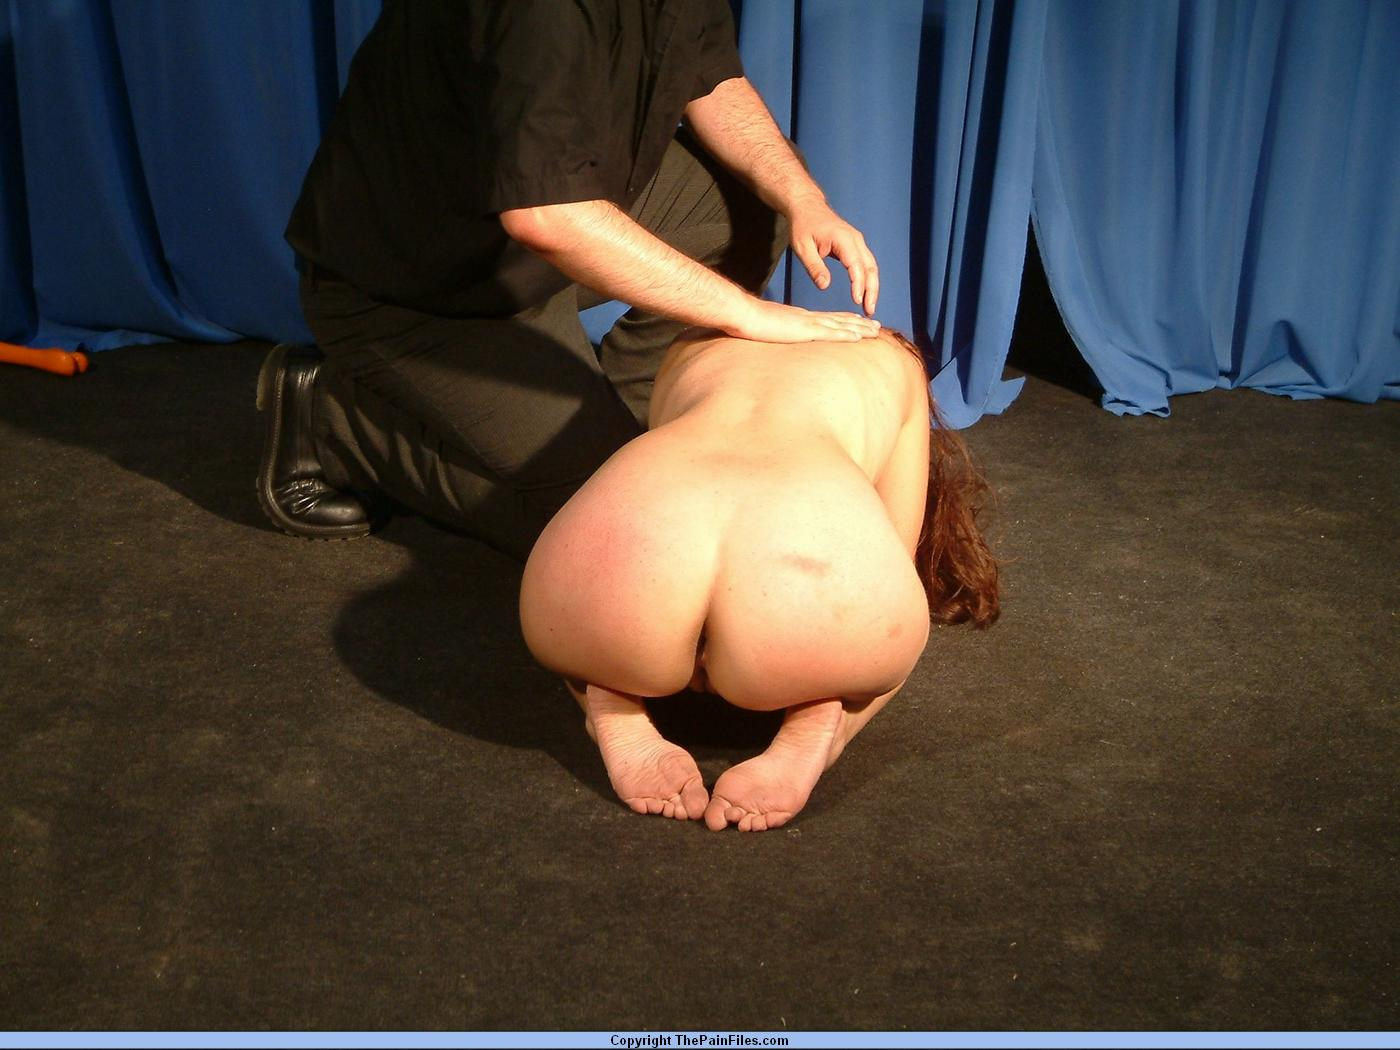 spanking punishment bdsm jpg 422x640